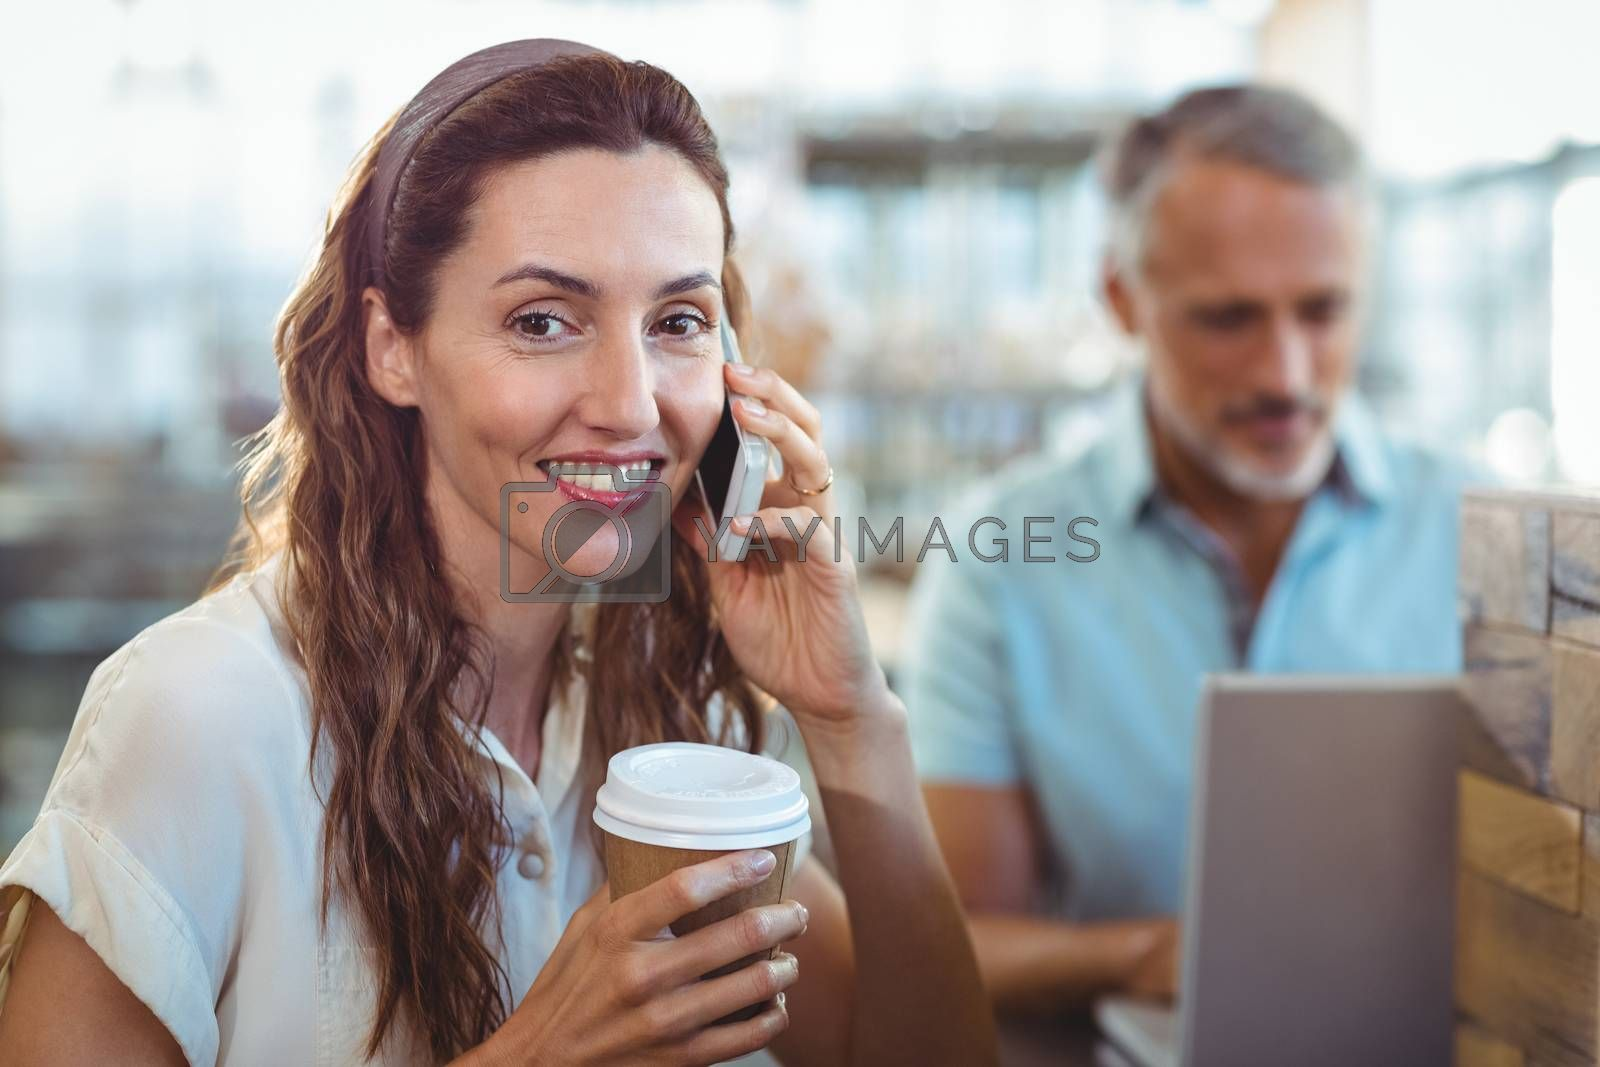 Royalty free image of Pretty brunette smiling at camera and having phone call by Wavebreakmedia